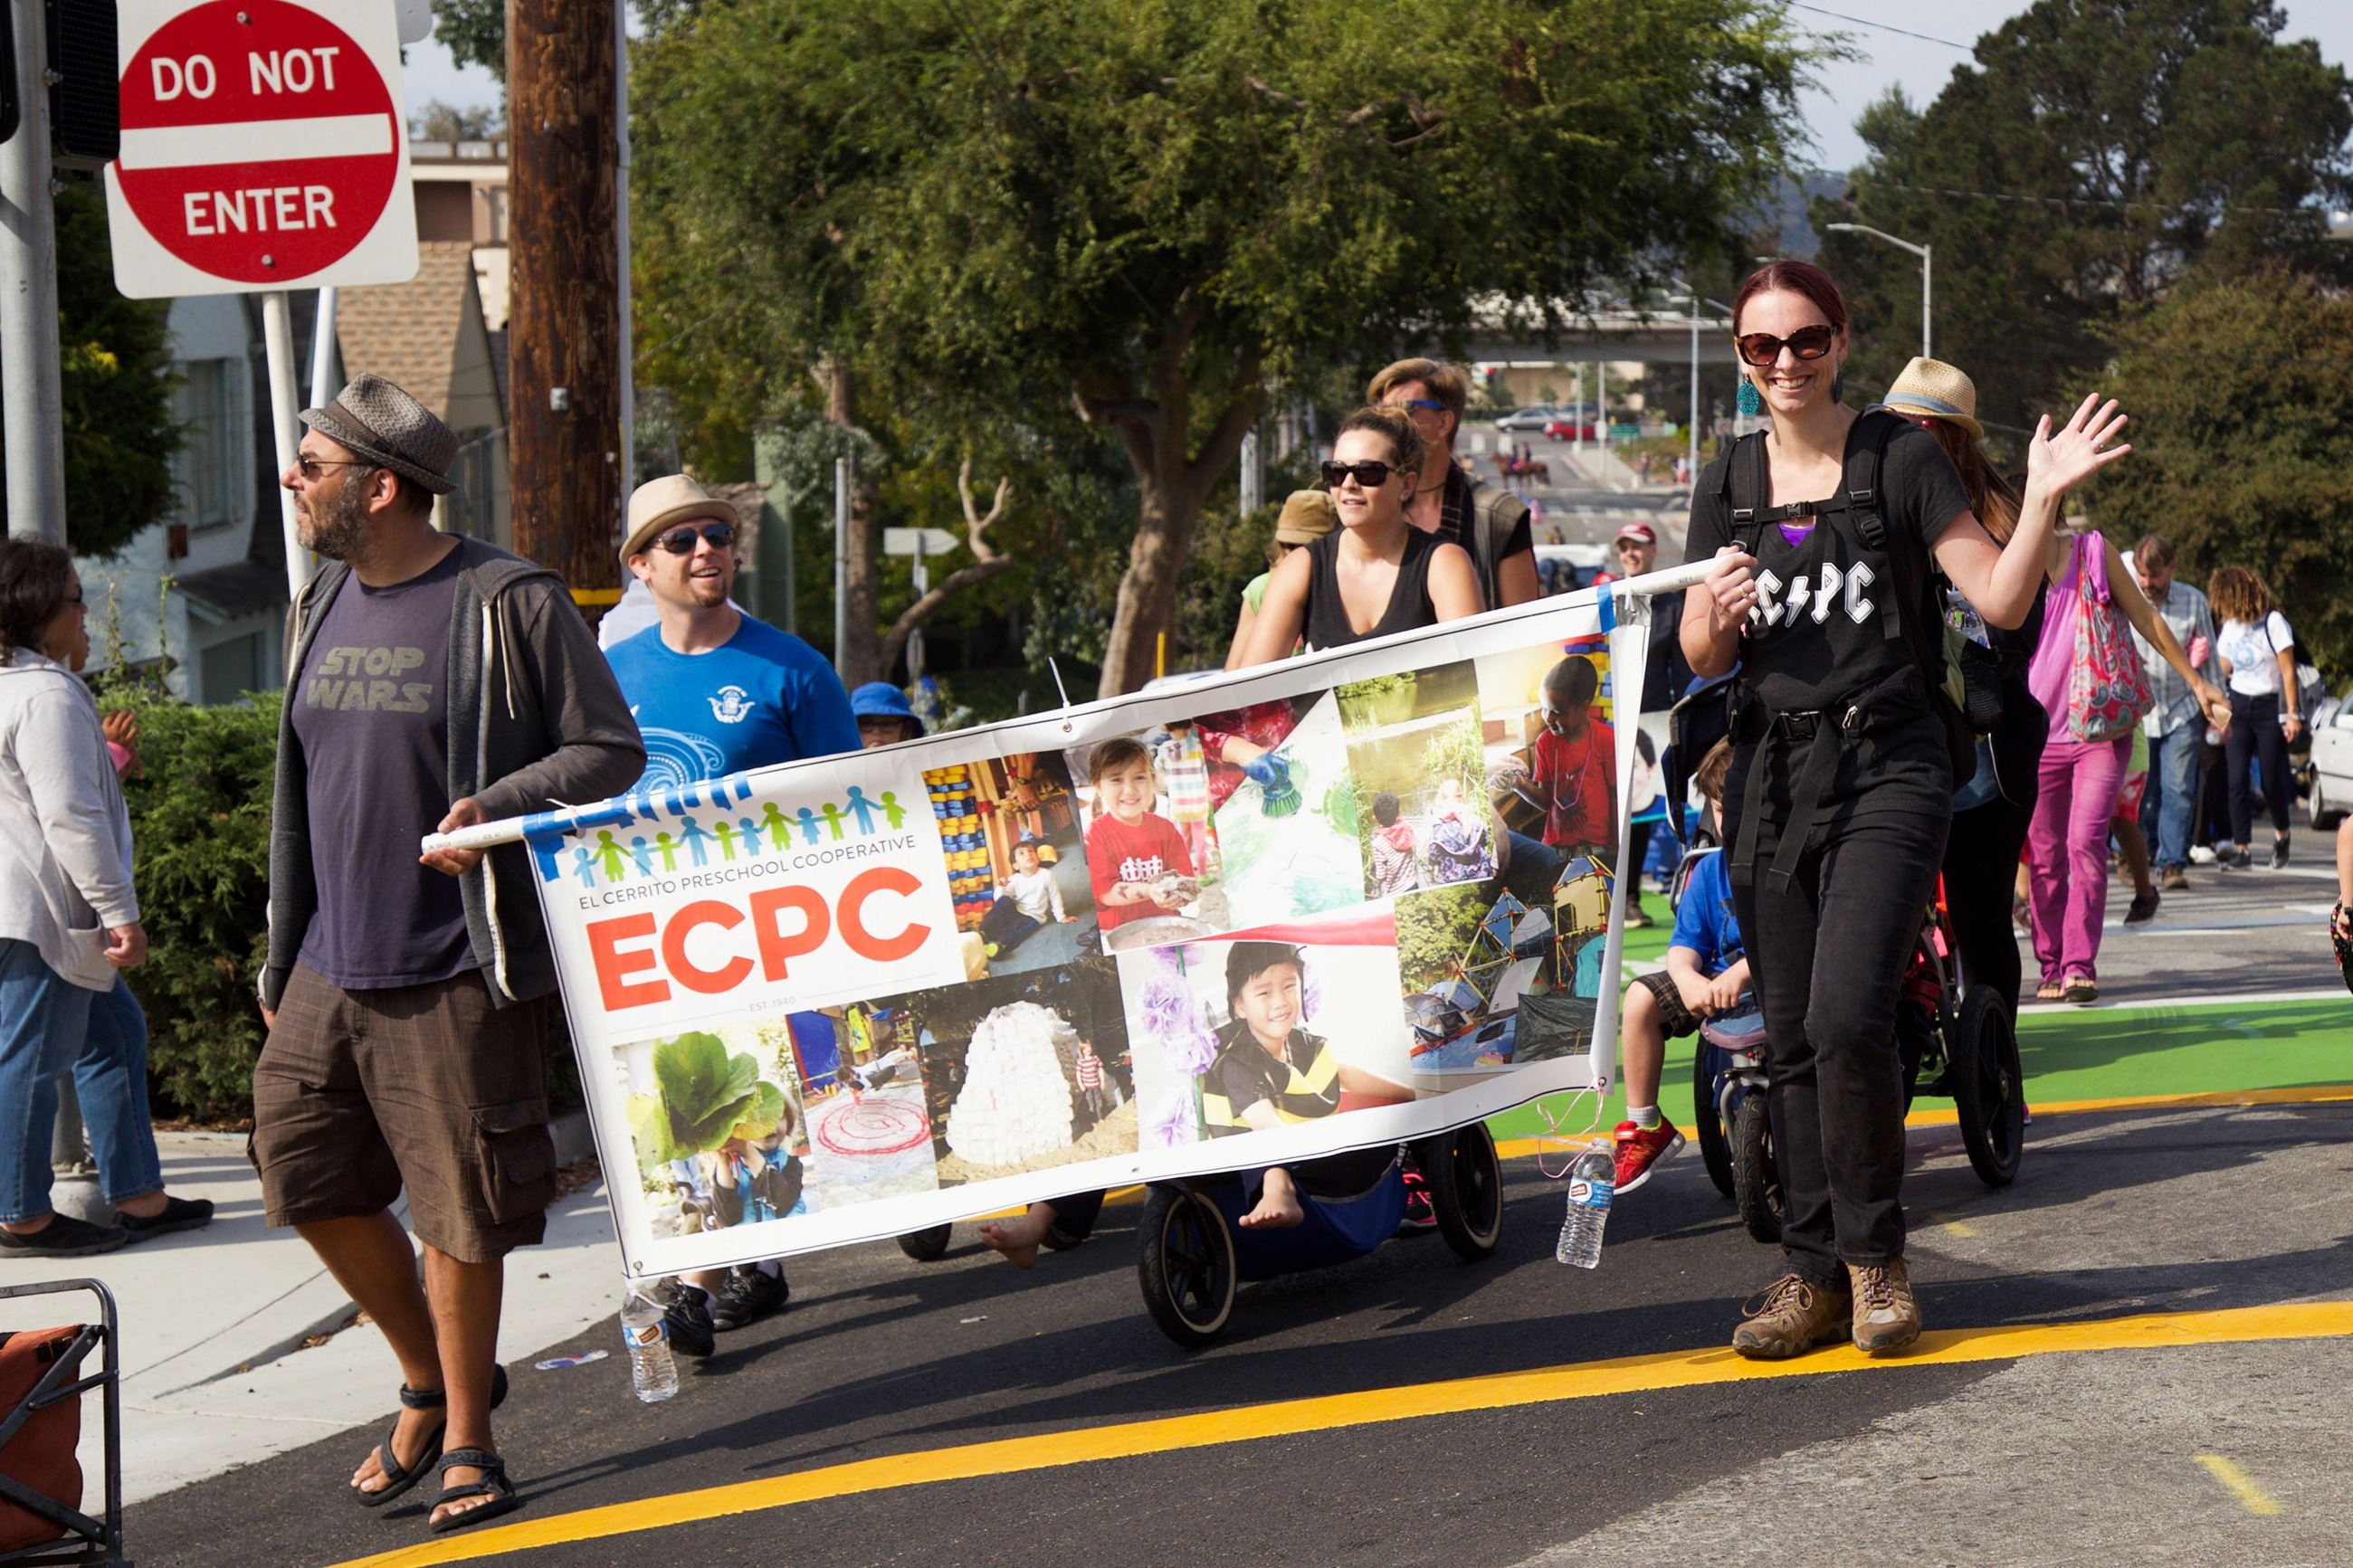 258 ECPC in Parade - Photo by Marin Stuart